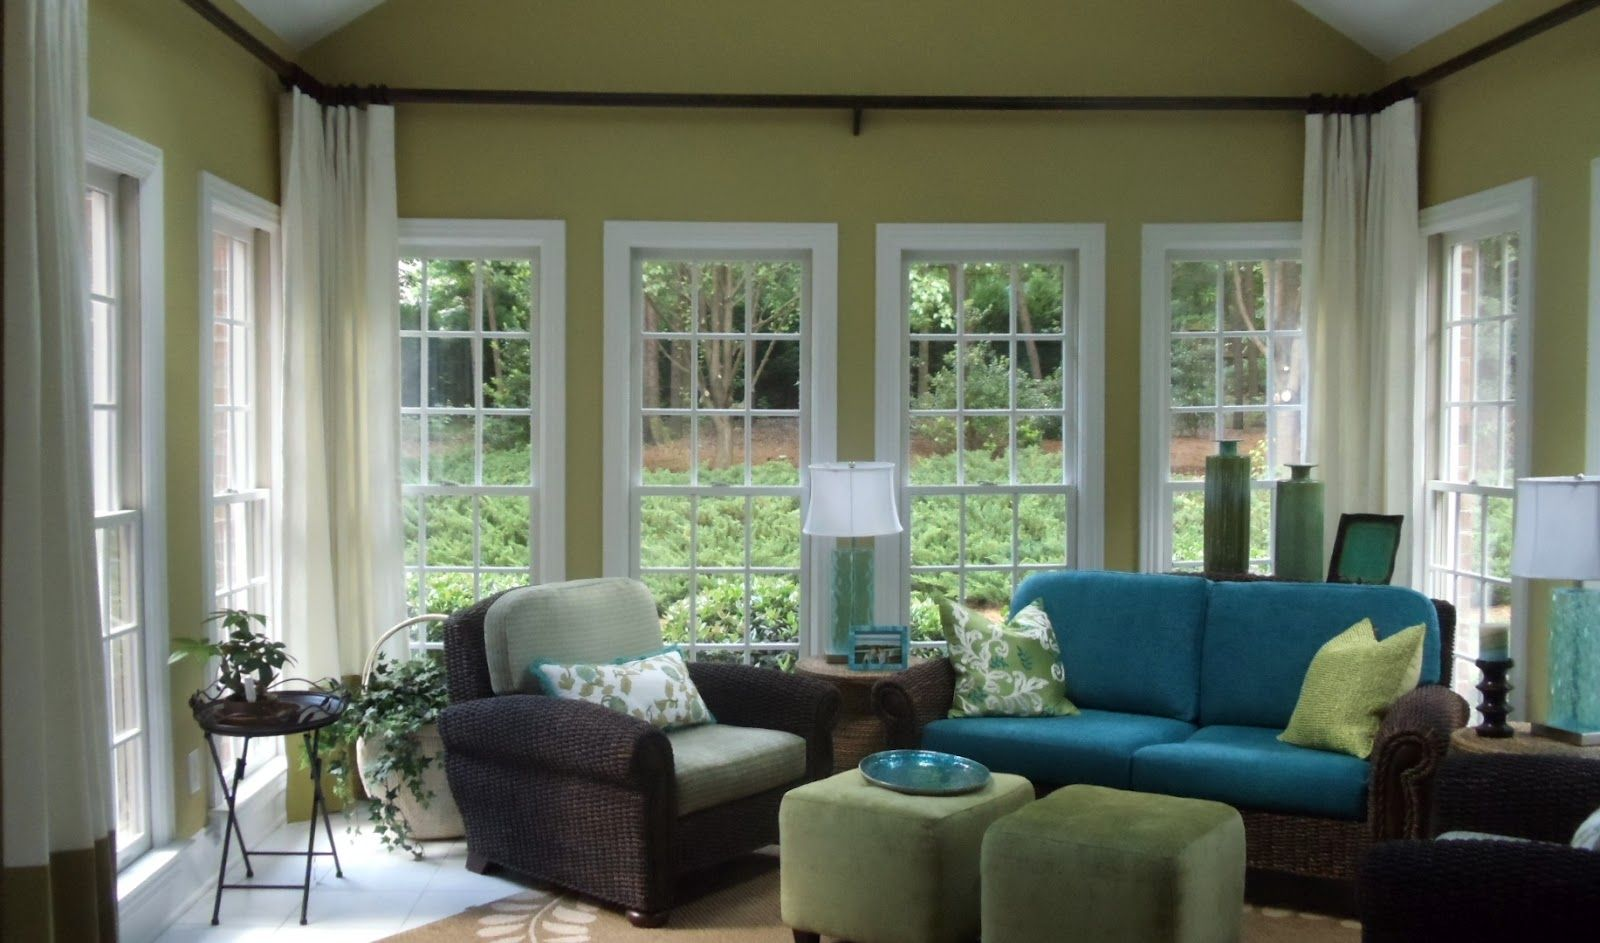 sunroom makeover on my list love the higher curtain interior design ideas - Interior Design Windows